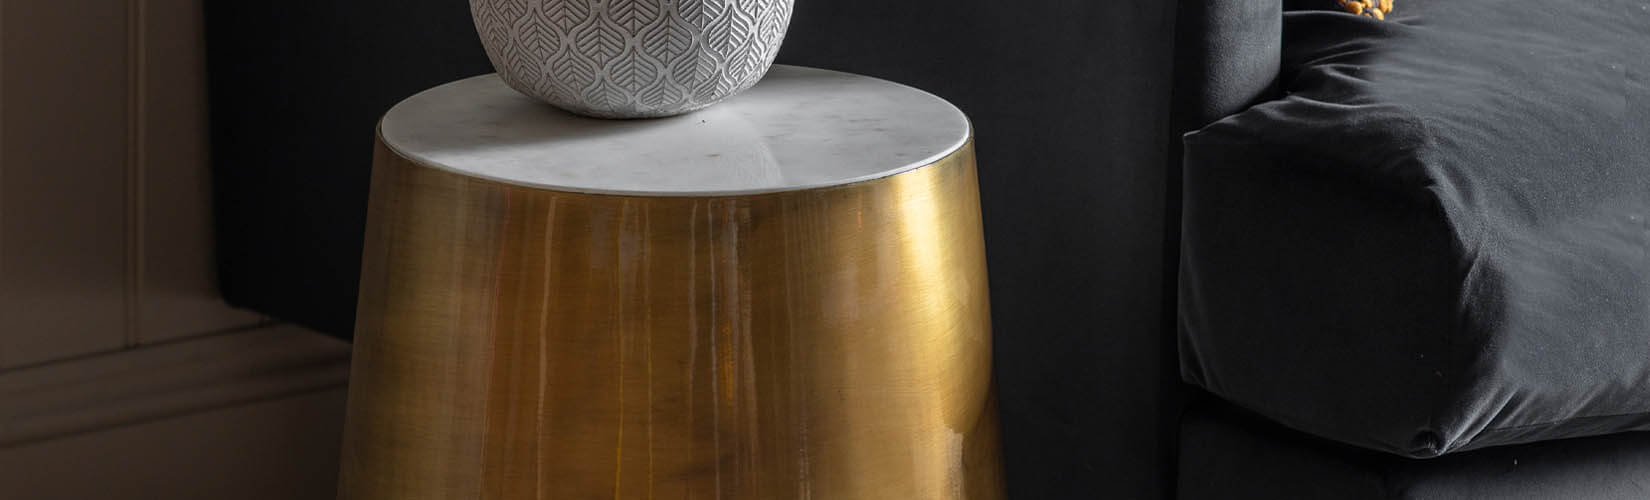 Add Chic Design To Your Interior with These 9 Statement Side Table Ideas